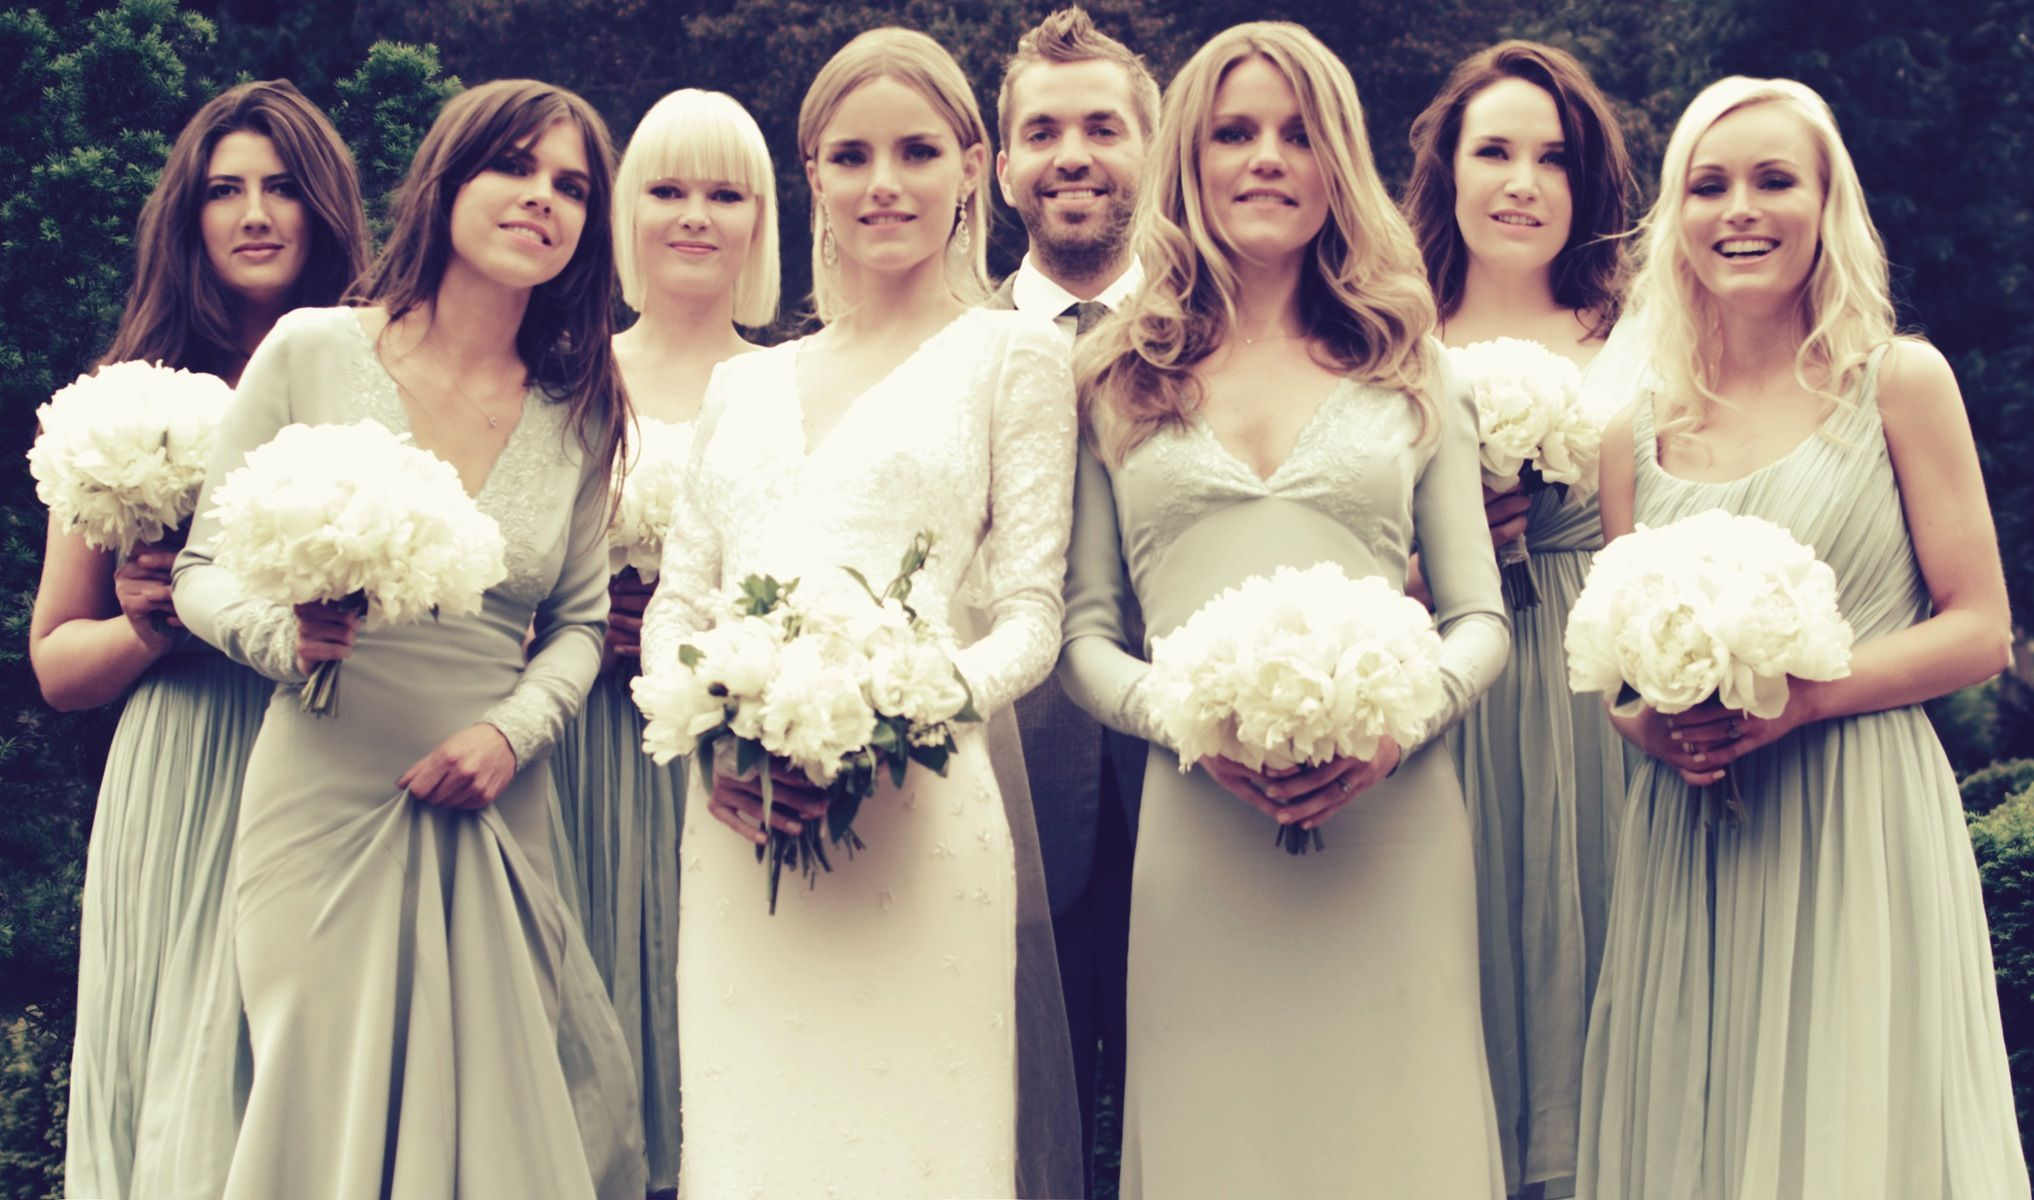 Dhani harrison celebrity wedding poses with mix and match dhani harrison celebrity wedding poses with mix and match bridesmaids ombrellifo Gallery